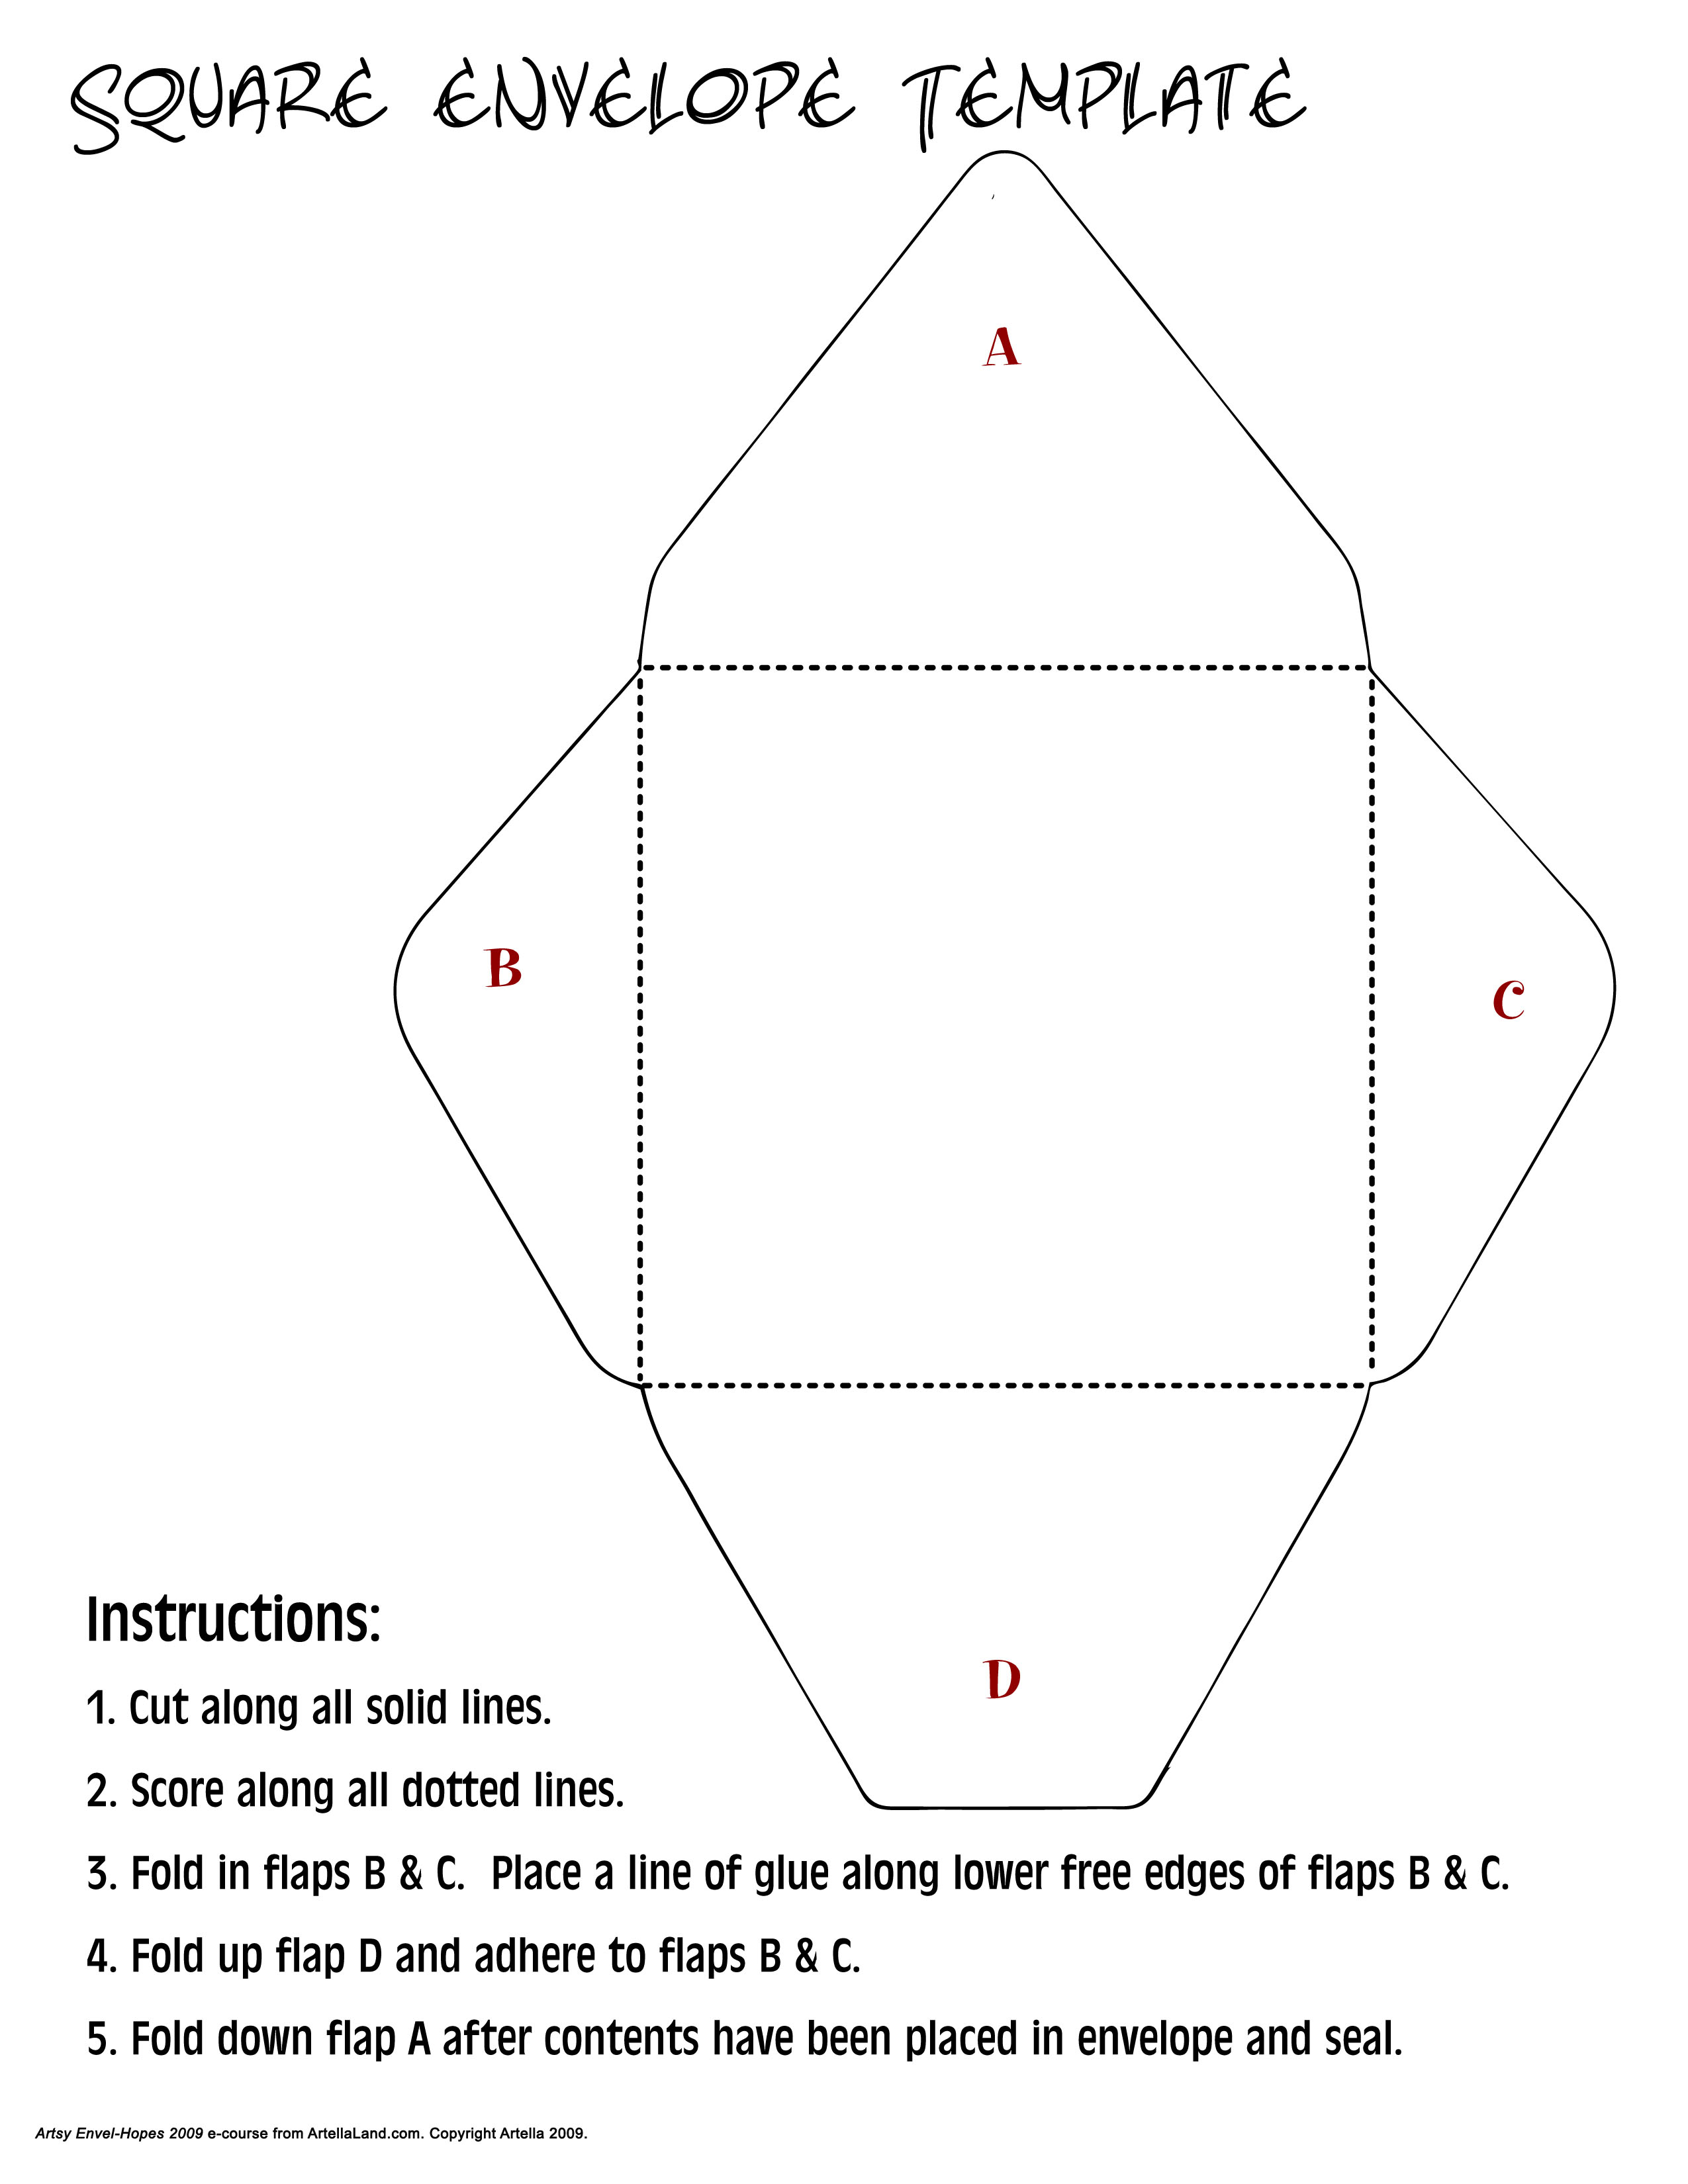 Square Pocketfold Template images